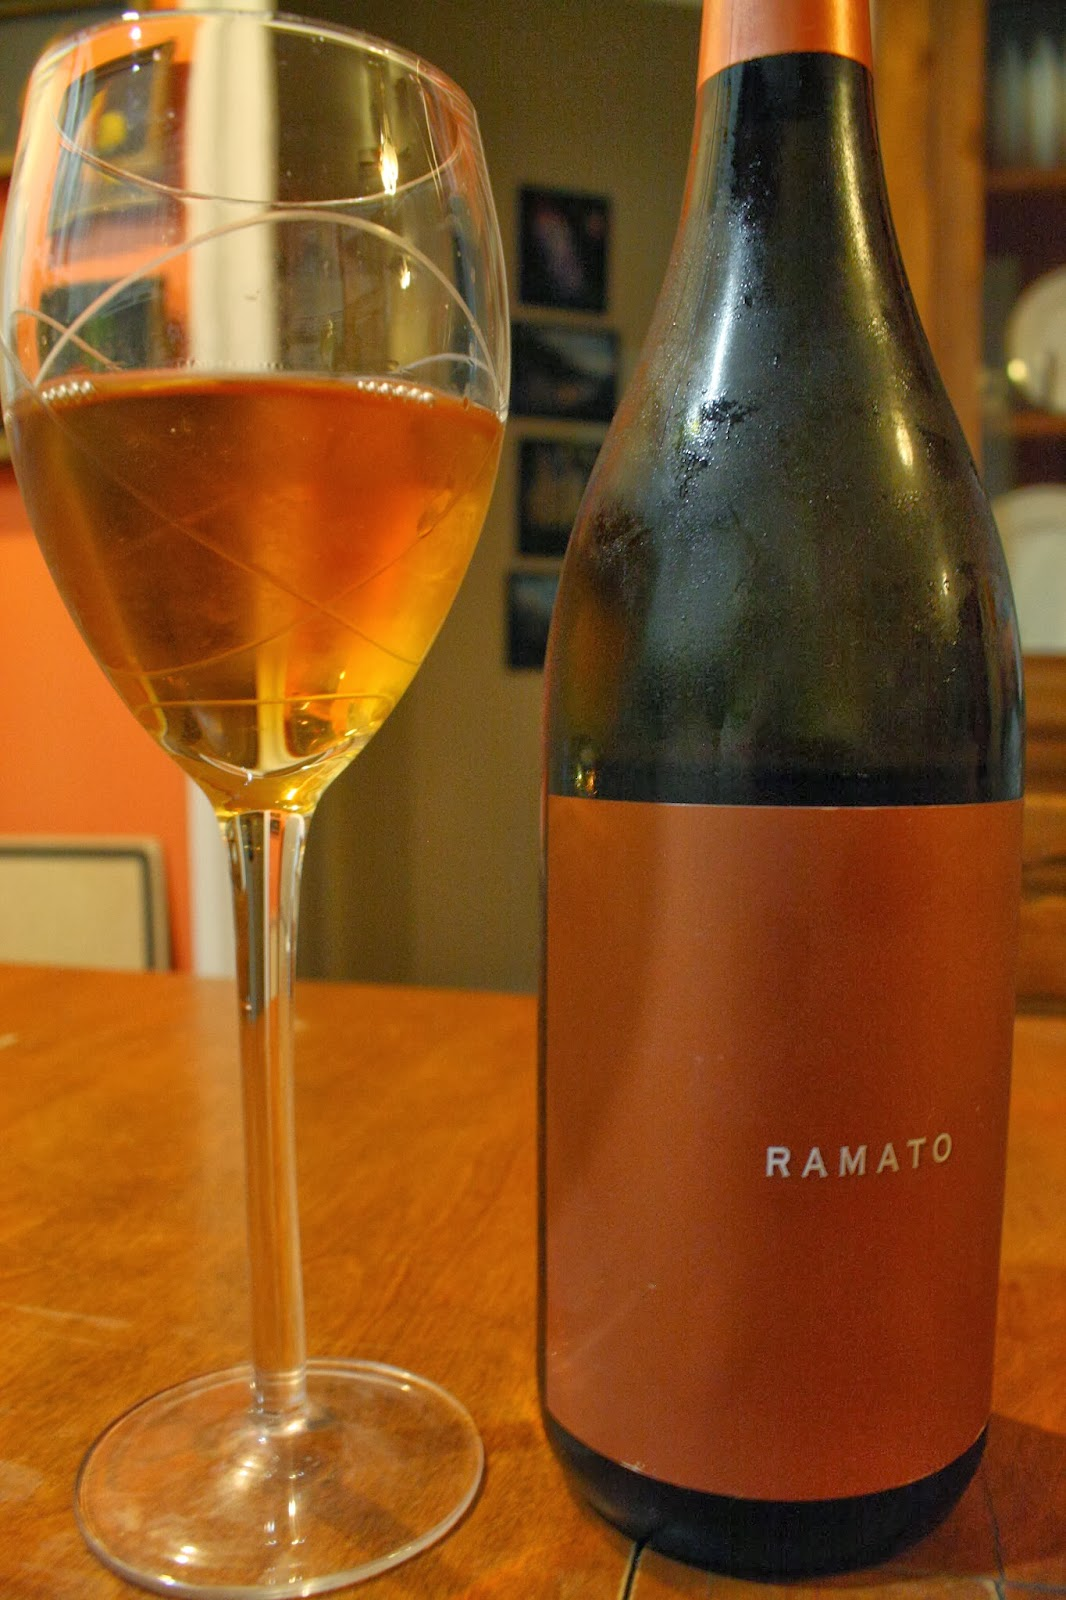 Channing Daughters, Romato, Orange Wine